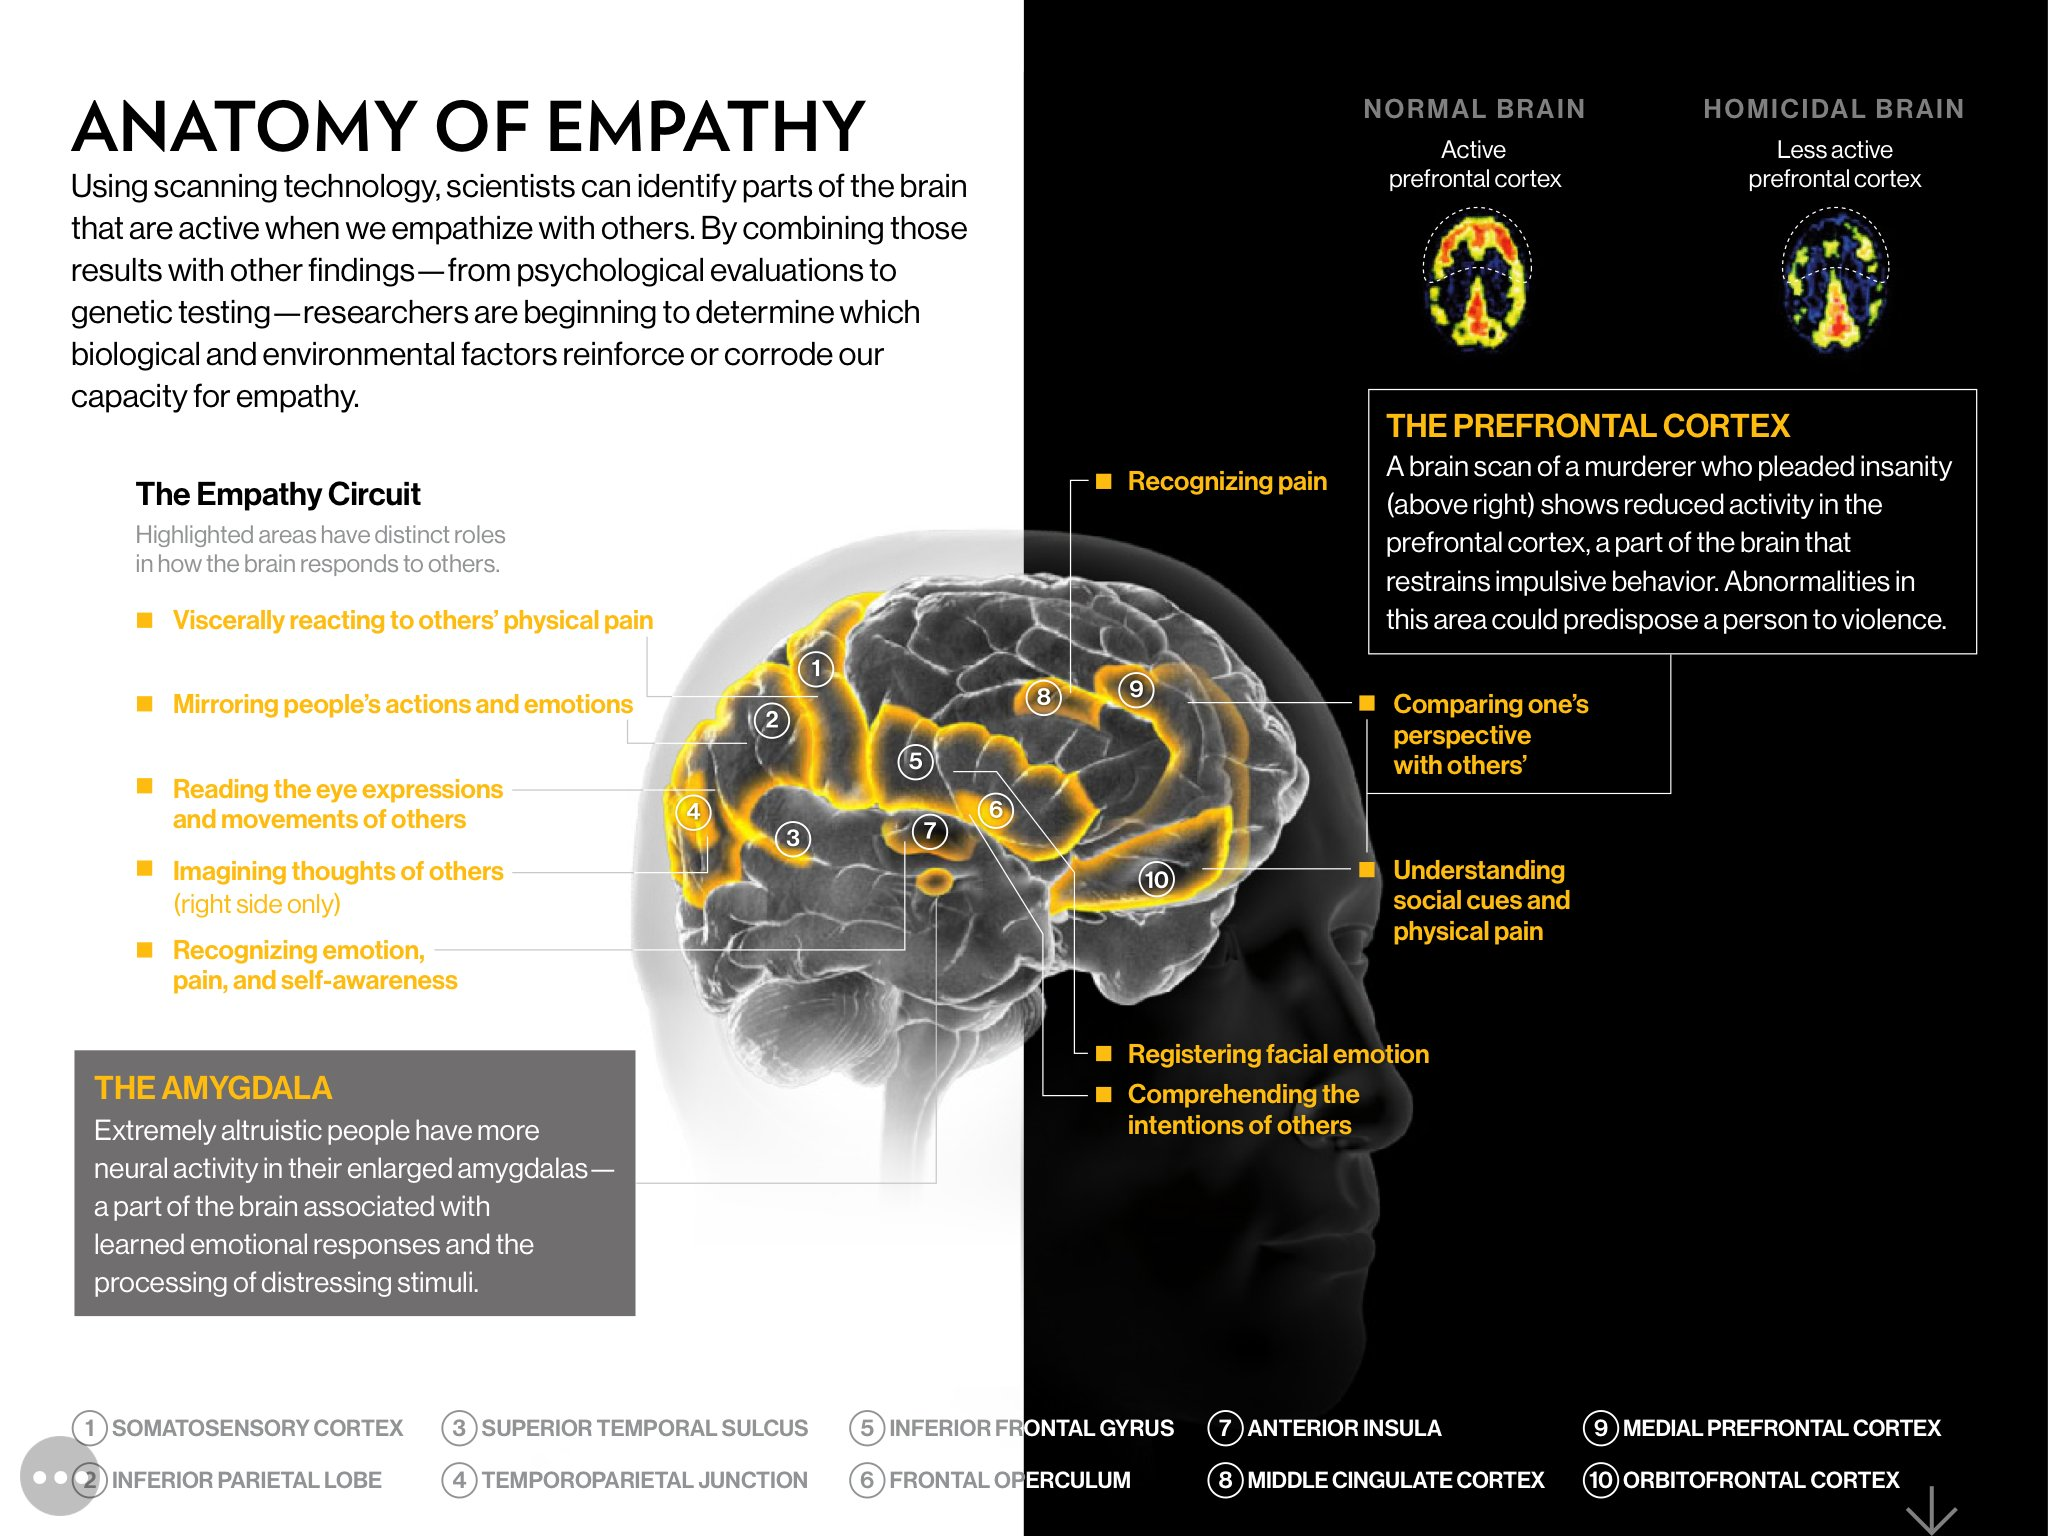 "María J. Díaz Candamio on Twitter: ""#Empathy Scientists know brain circuit # anatomy and how it is activated and suppressed But we are far away from changing people's capacity for empathy 😅 @NatGeo"